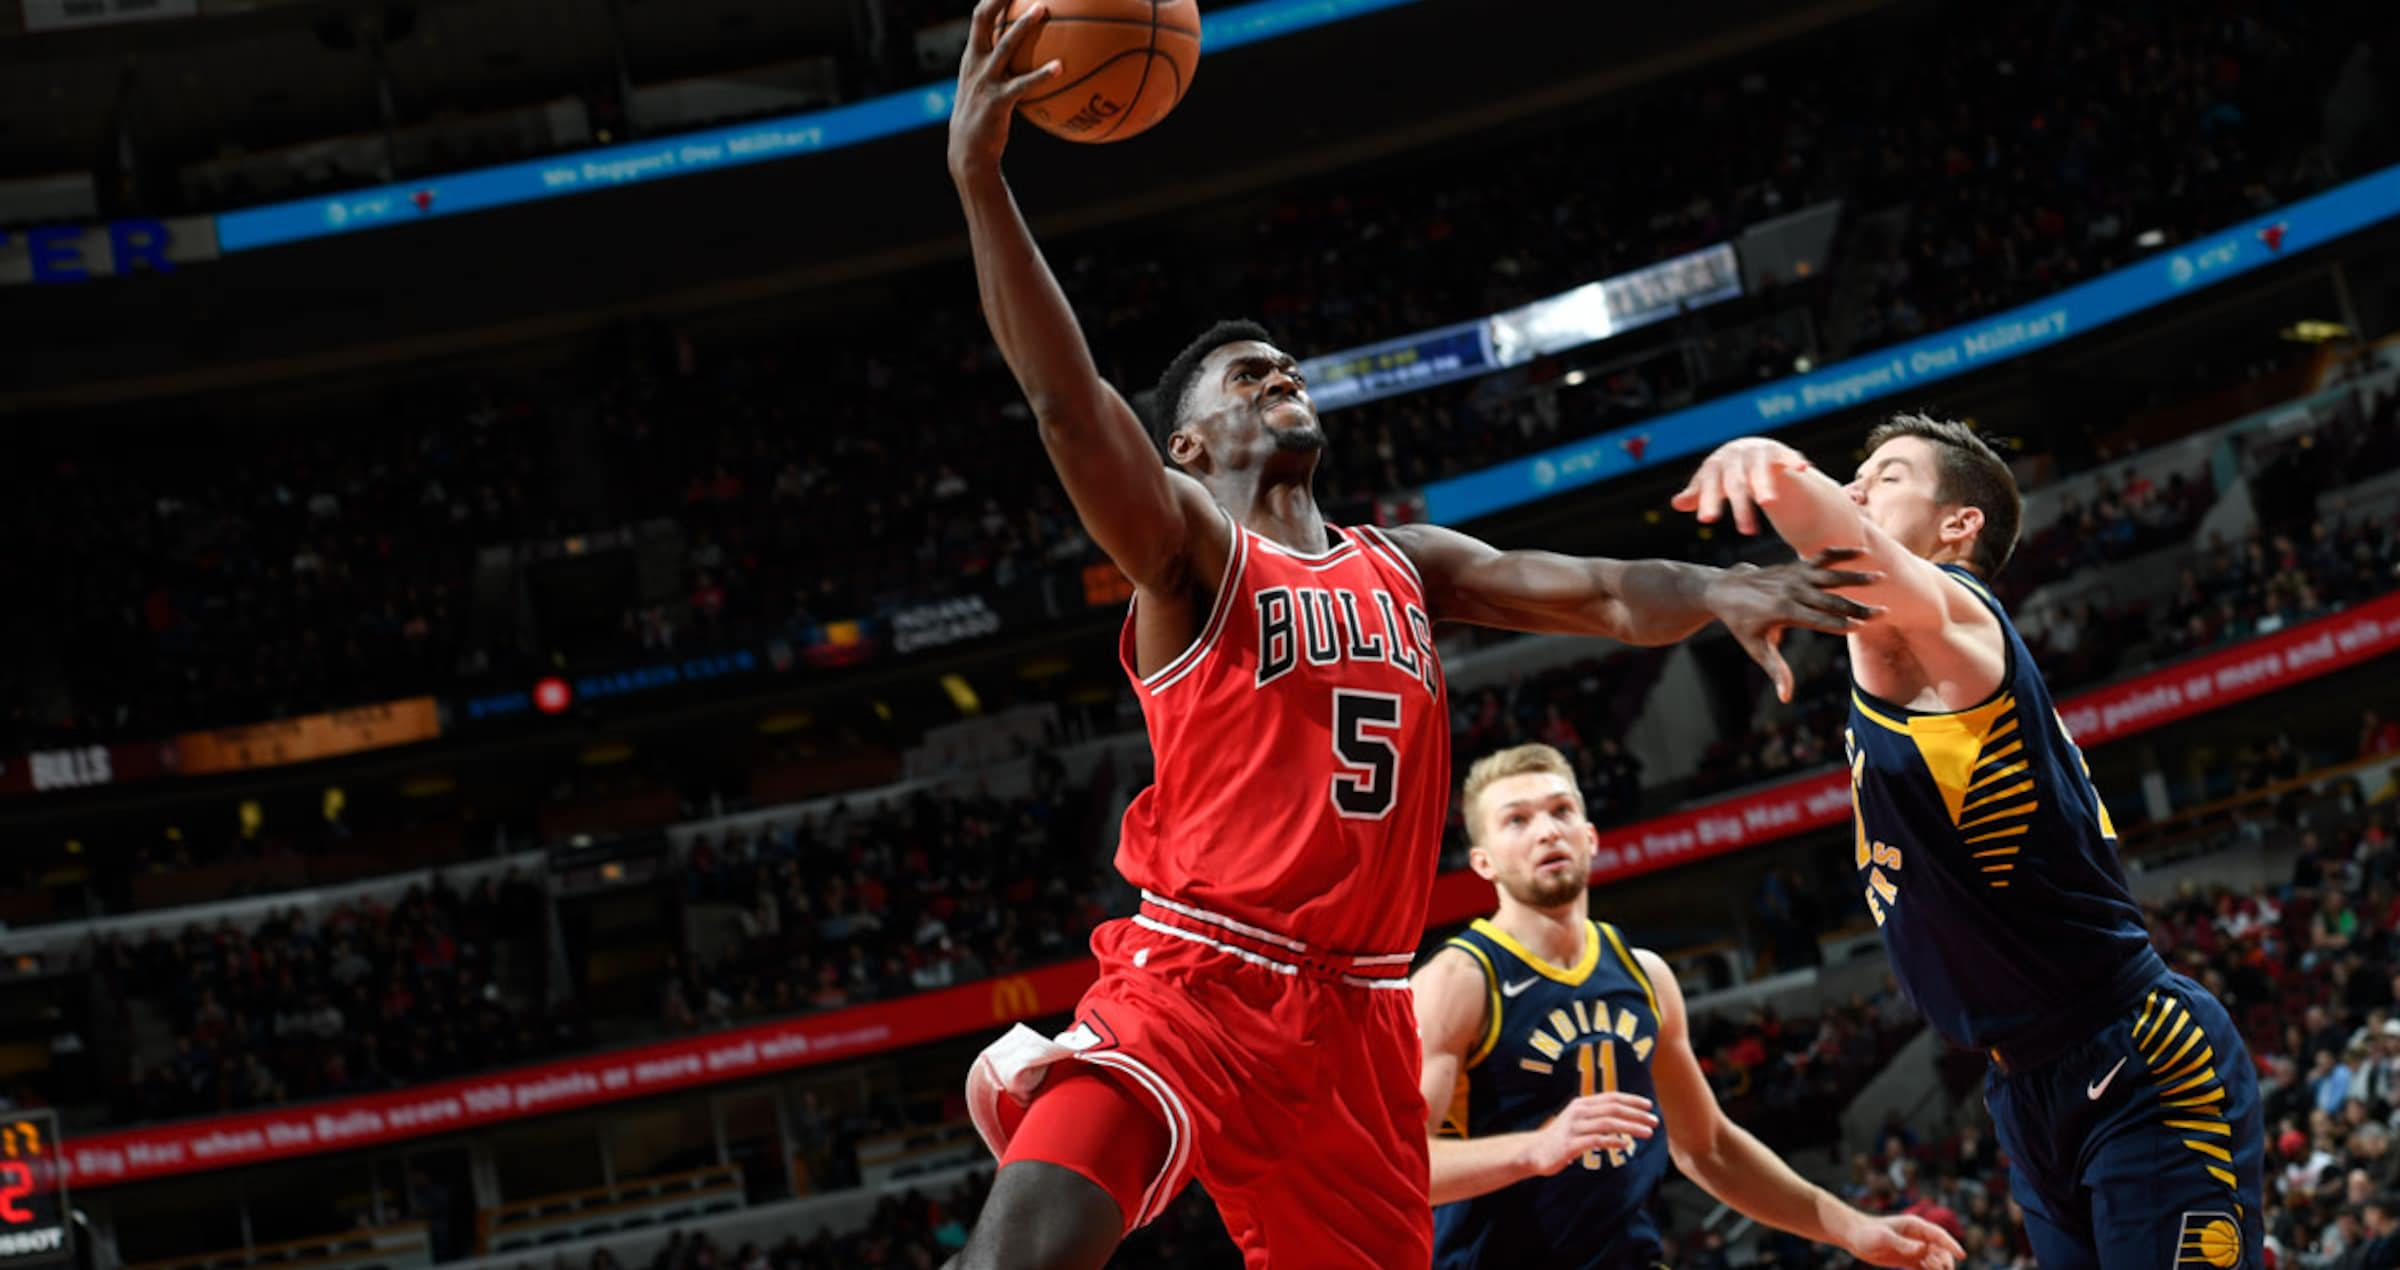 Number 5 Bobby Portis of the Chicago Bulls shooting the ball against the Indiana Pacers , November 10, 2017 at the United Center Chicago, IL